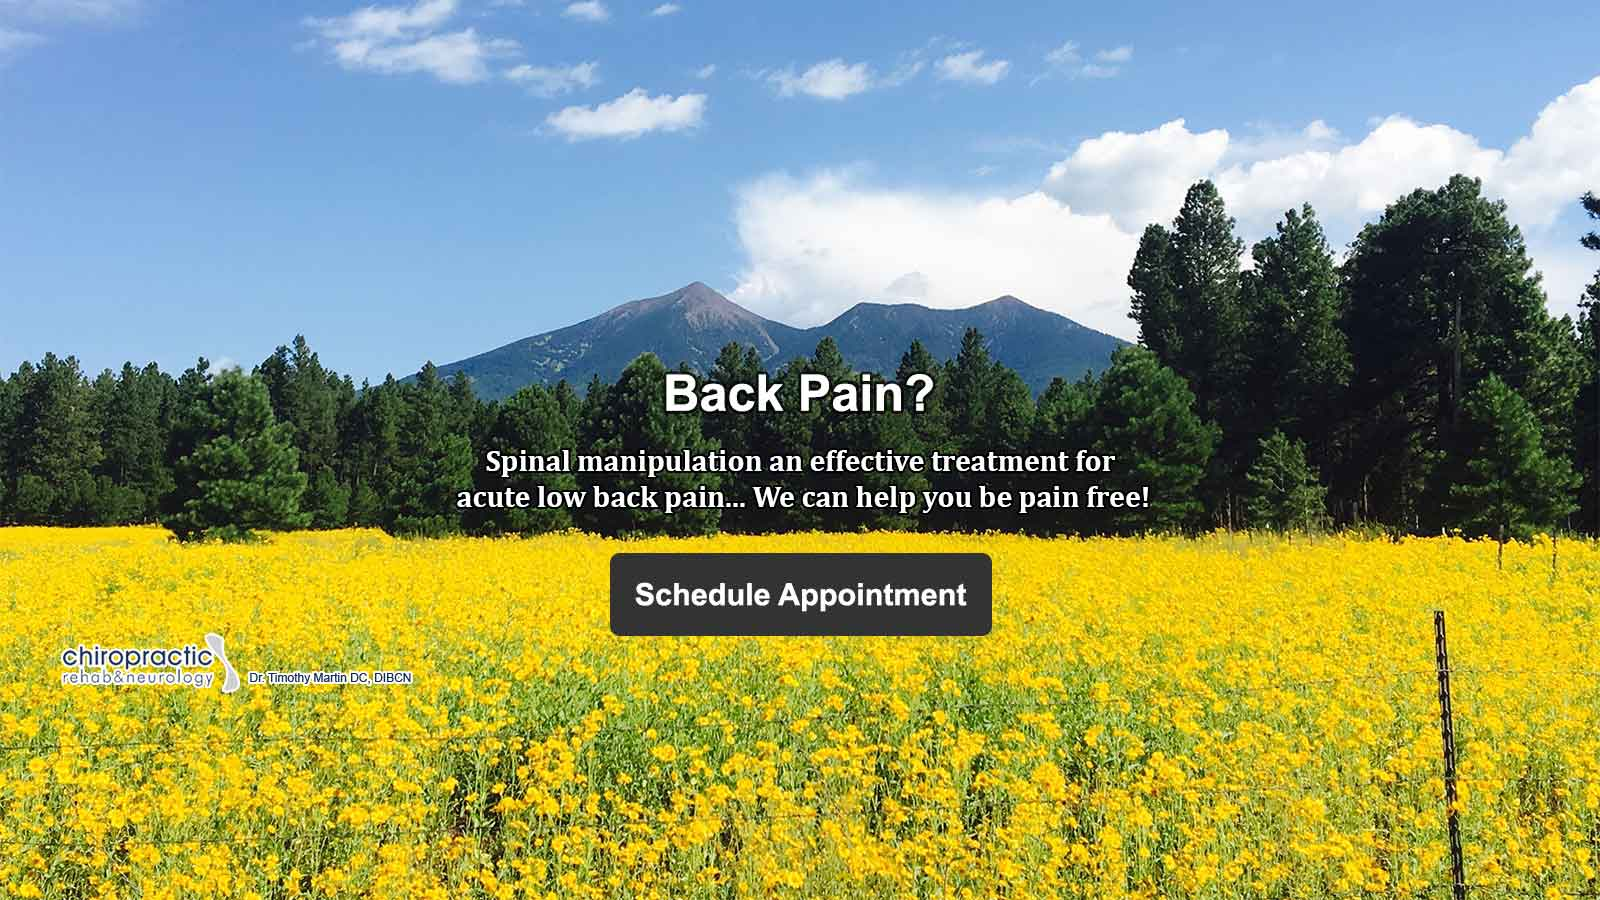 Spinal manipulation - Chiropractic care in Anthem, Cave Creek, Carefree, Tramonto, and Northern Arizona